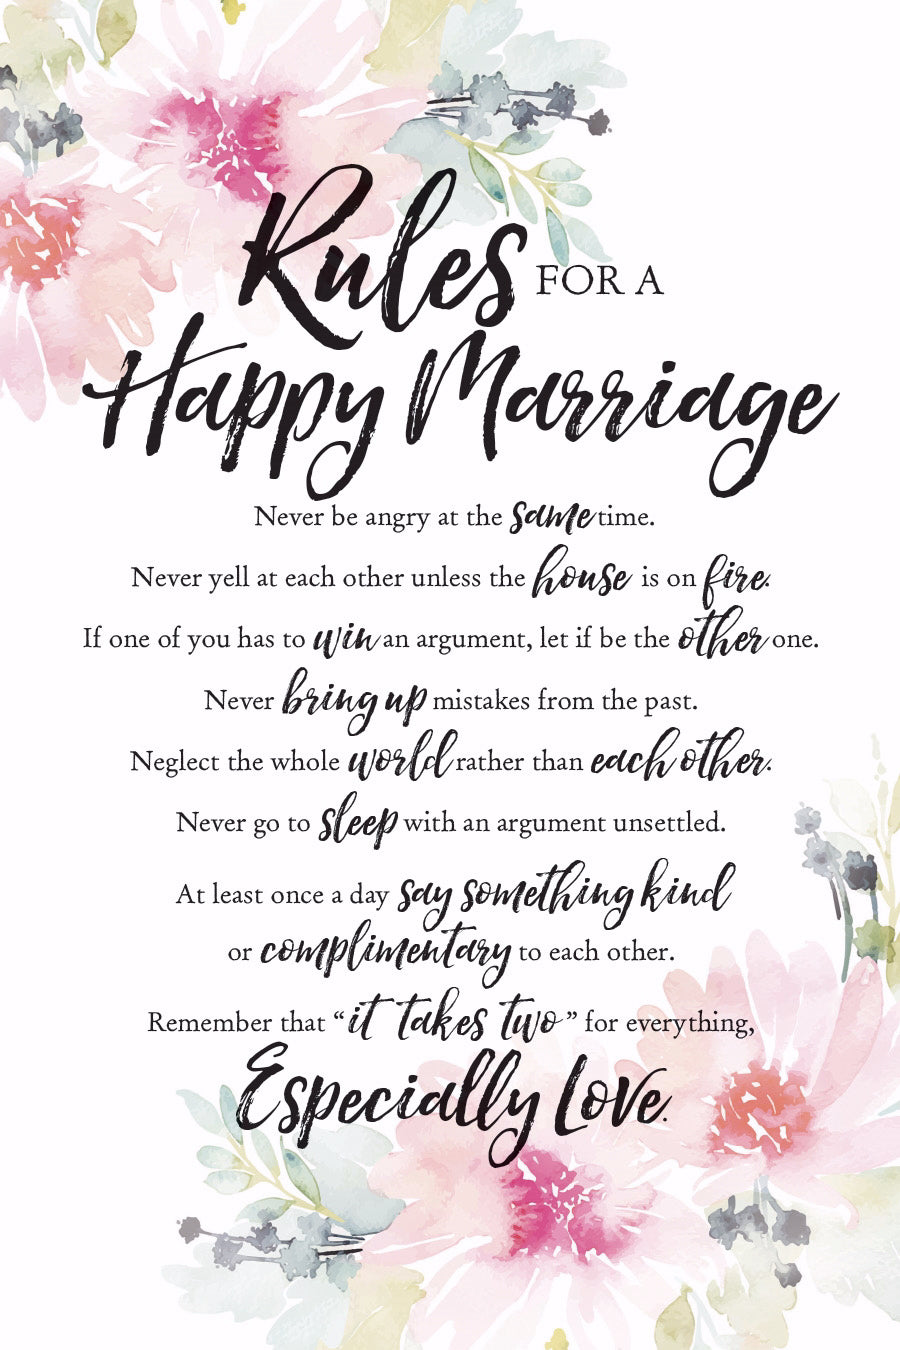 Plaque-Woodland Grace-Rules For Happy Marriage (6 x 9)